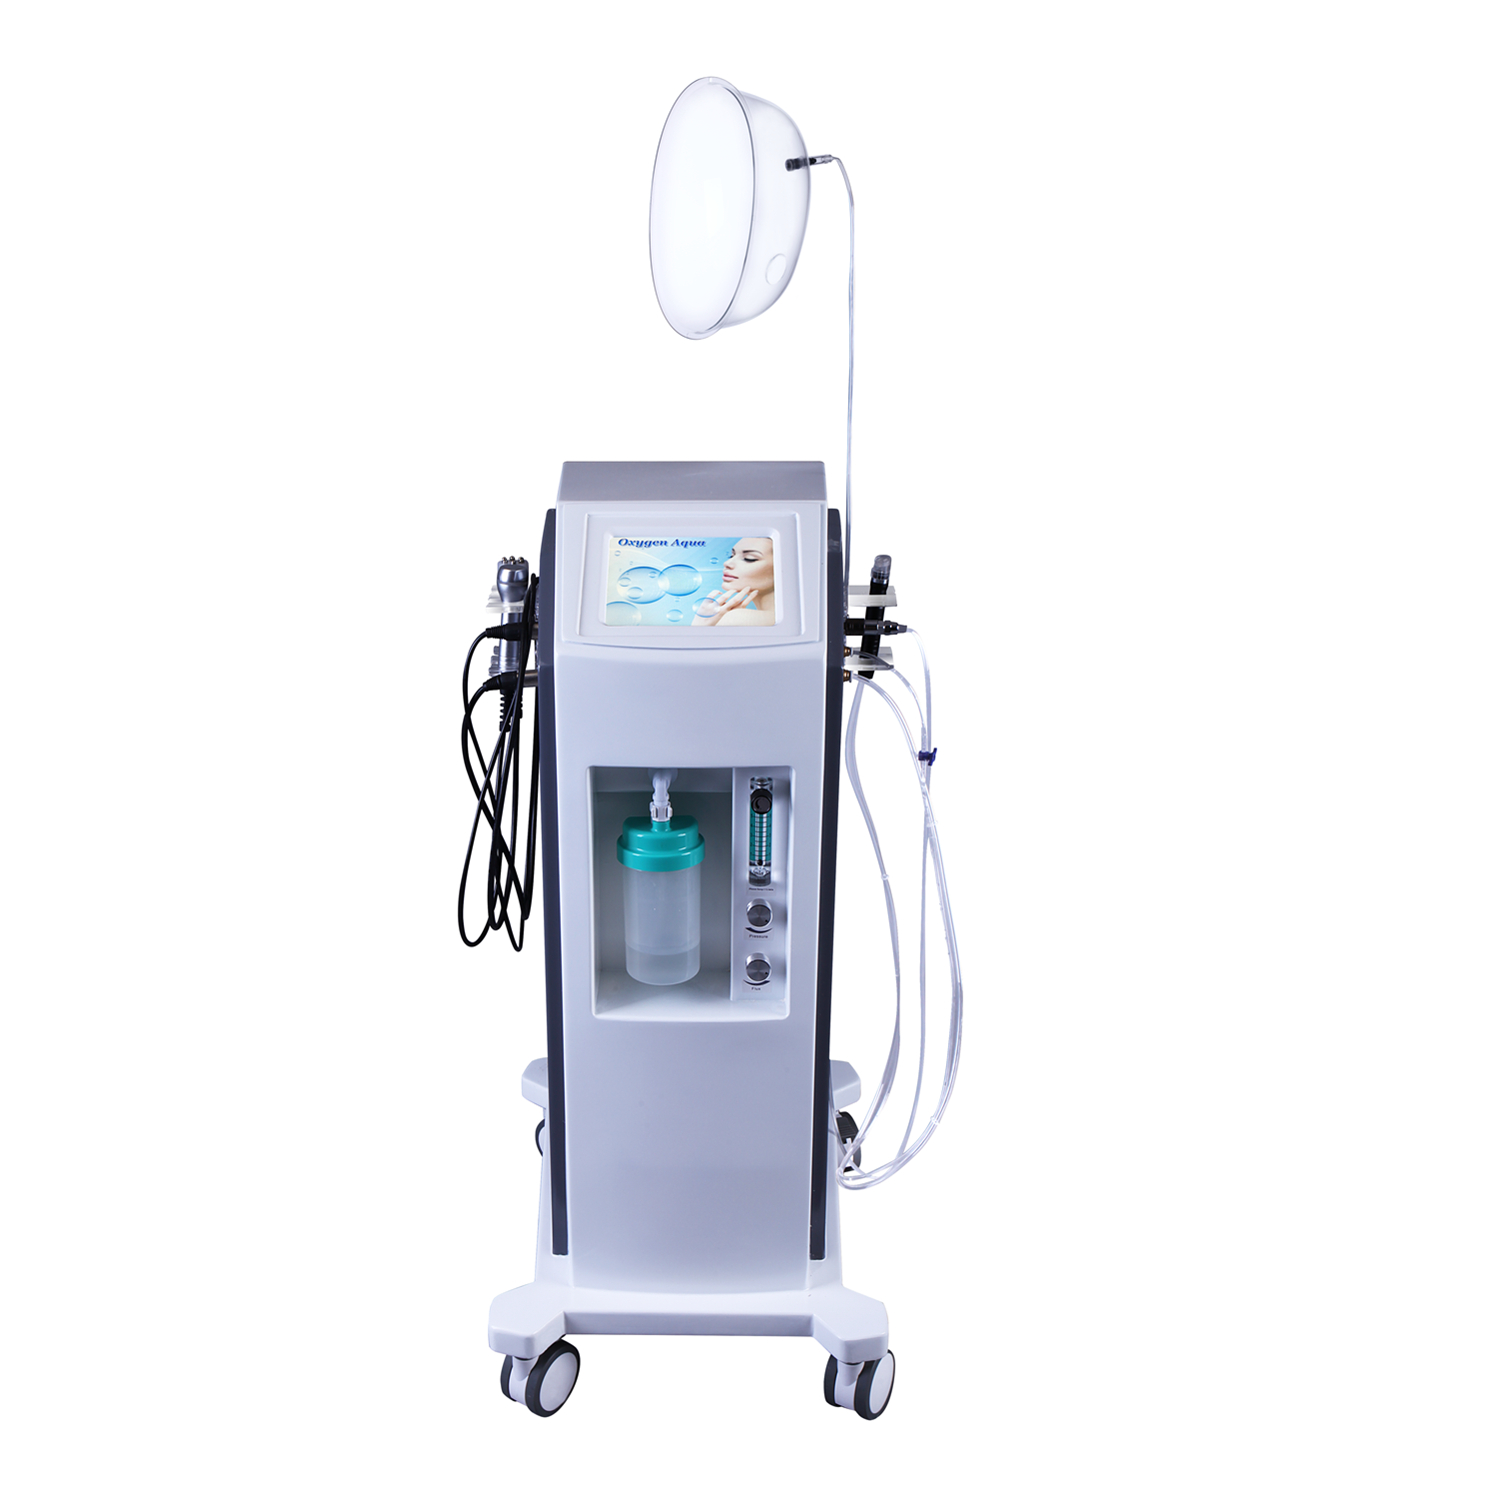 Skin Care Oxygen Jet Peel Hydra Facial Cleaning Machine for Skin Rejuvenation /Acne Treatment